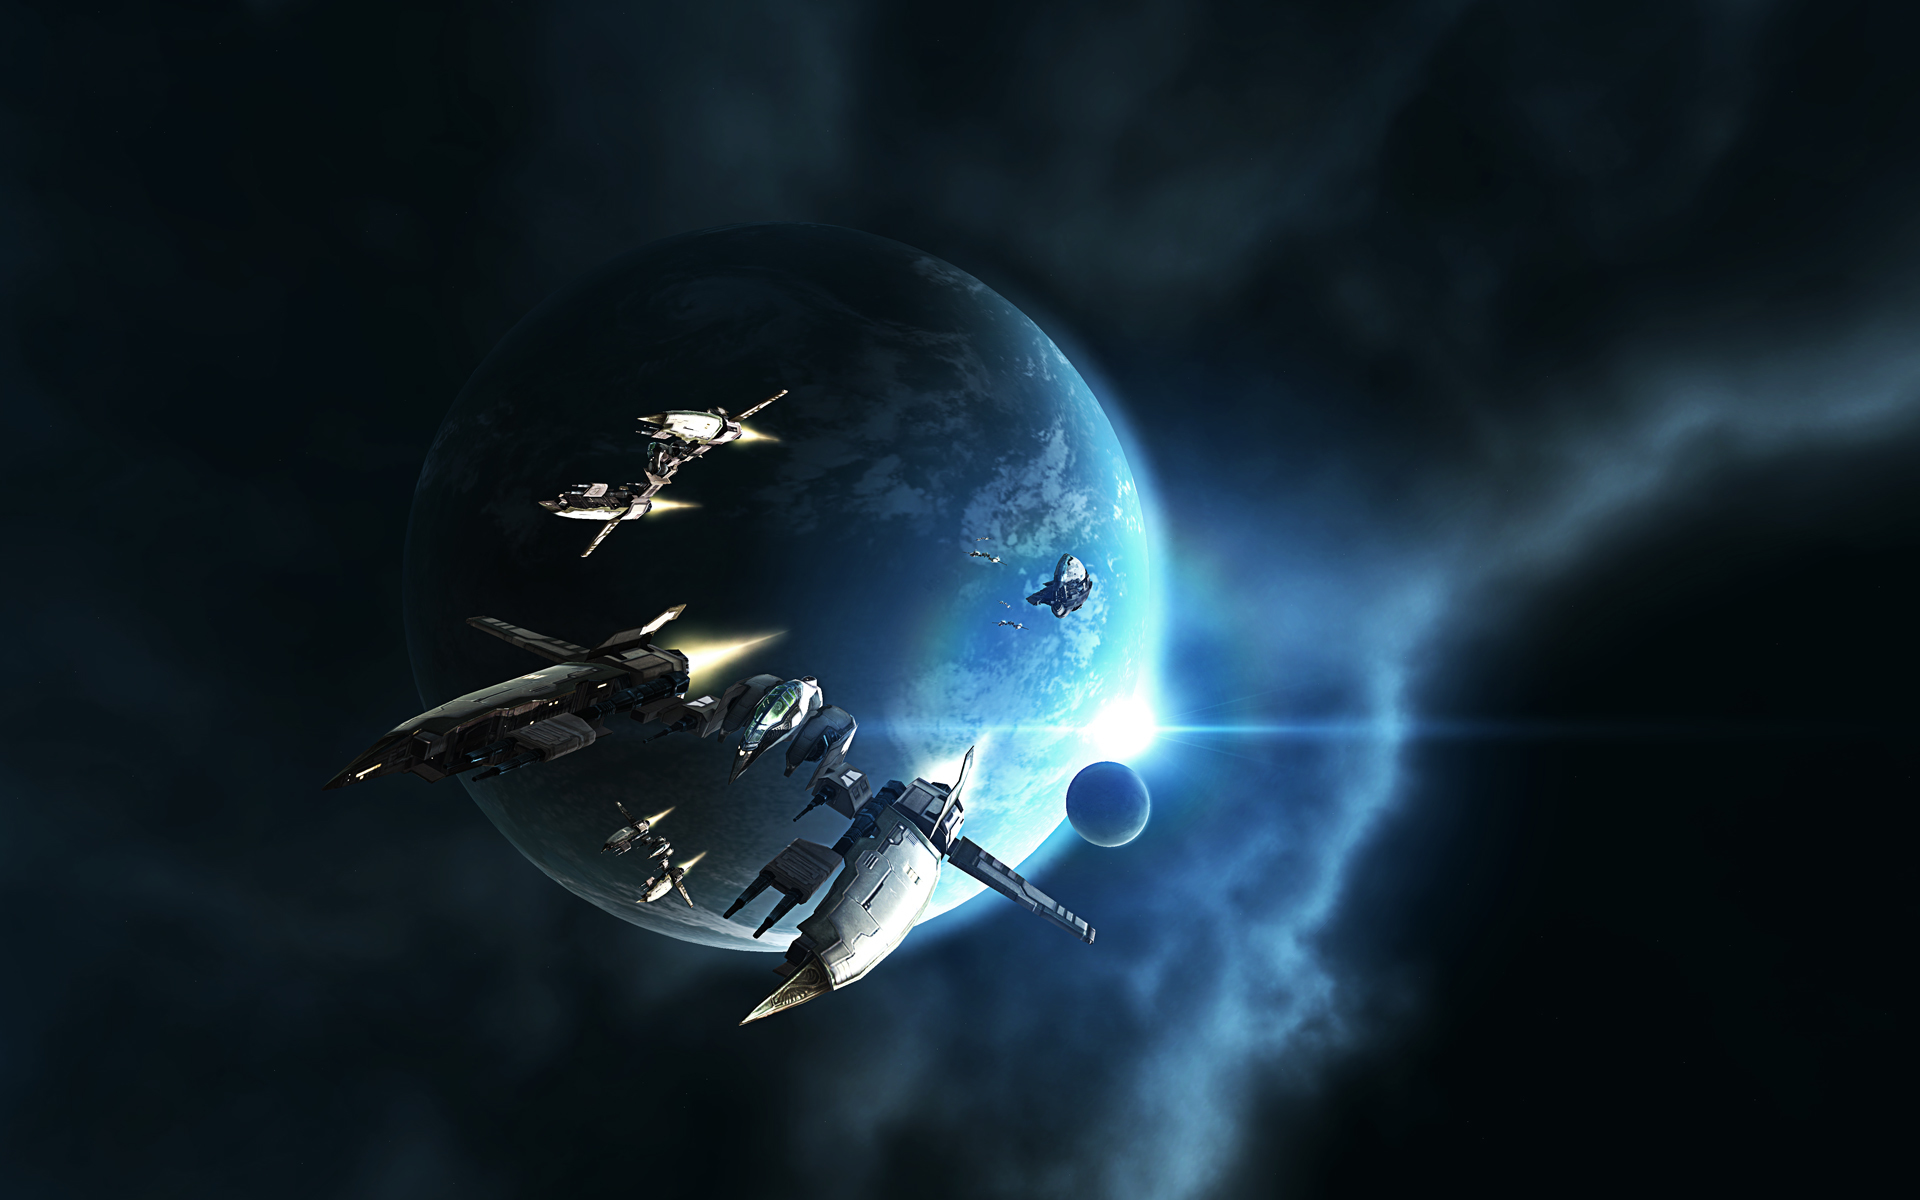 eve online HD Wallpaper